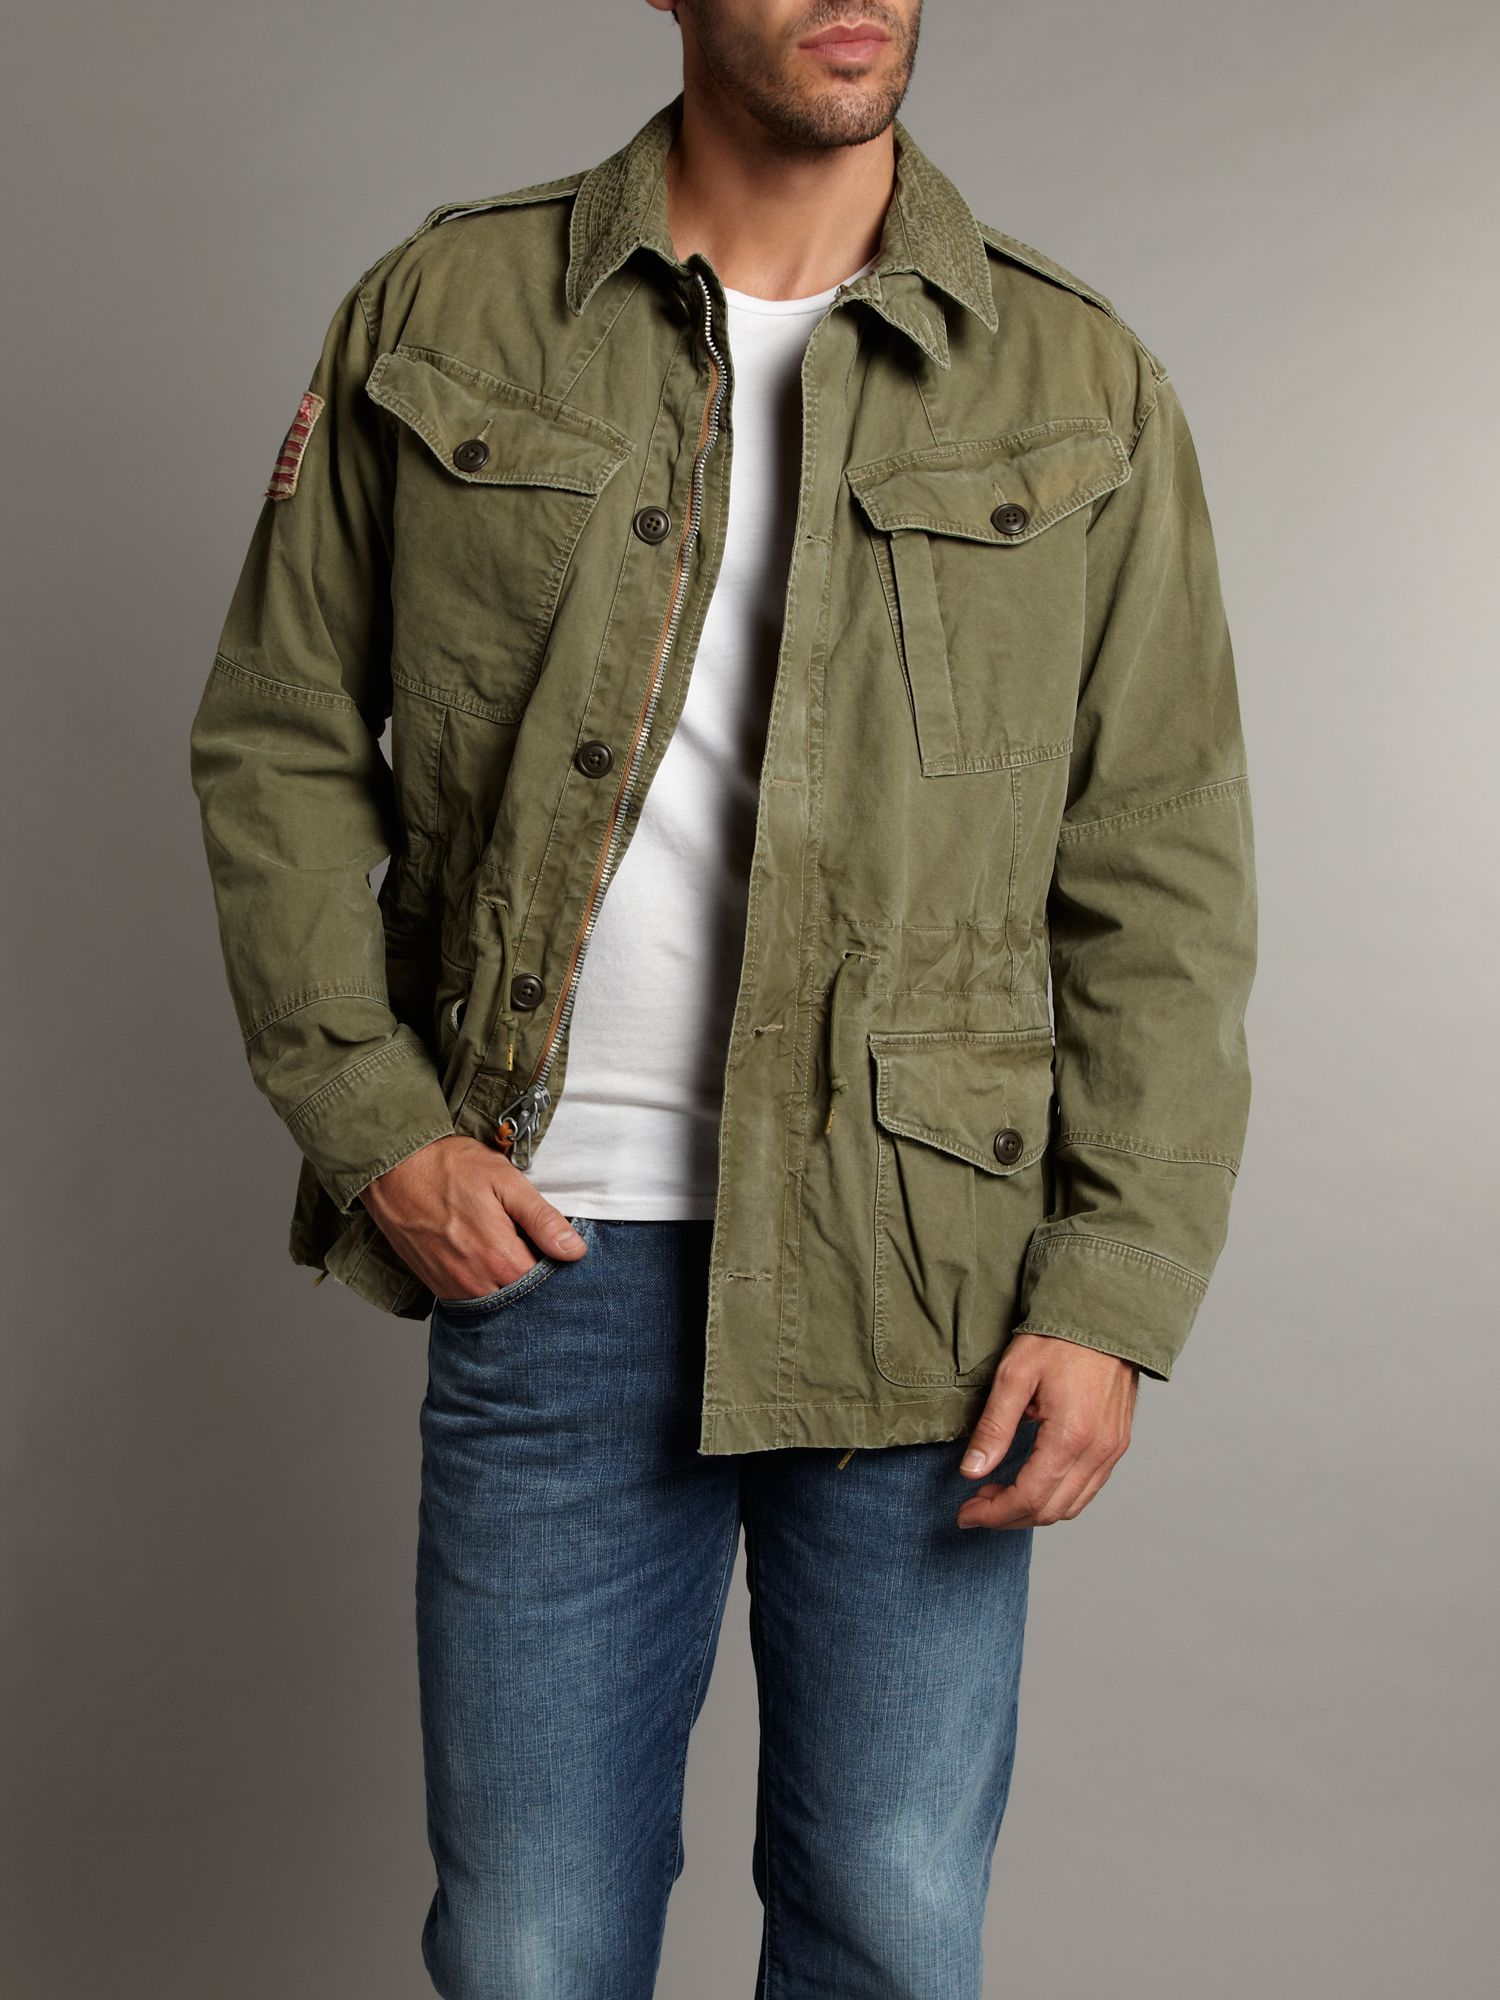 Shop great deals on Military Jackets, Army Jackets, Field Jackets & Flight Jackets at The Sportsman's Guide. We have a full selection of quality Camo Jackets, Bomber Jackets, Military Trench Coats, Pea Coats & Dress Jackets, Rain Gear and Ponchos and so .